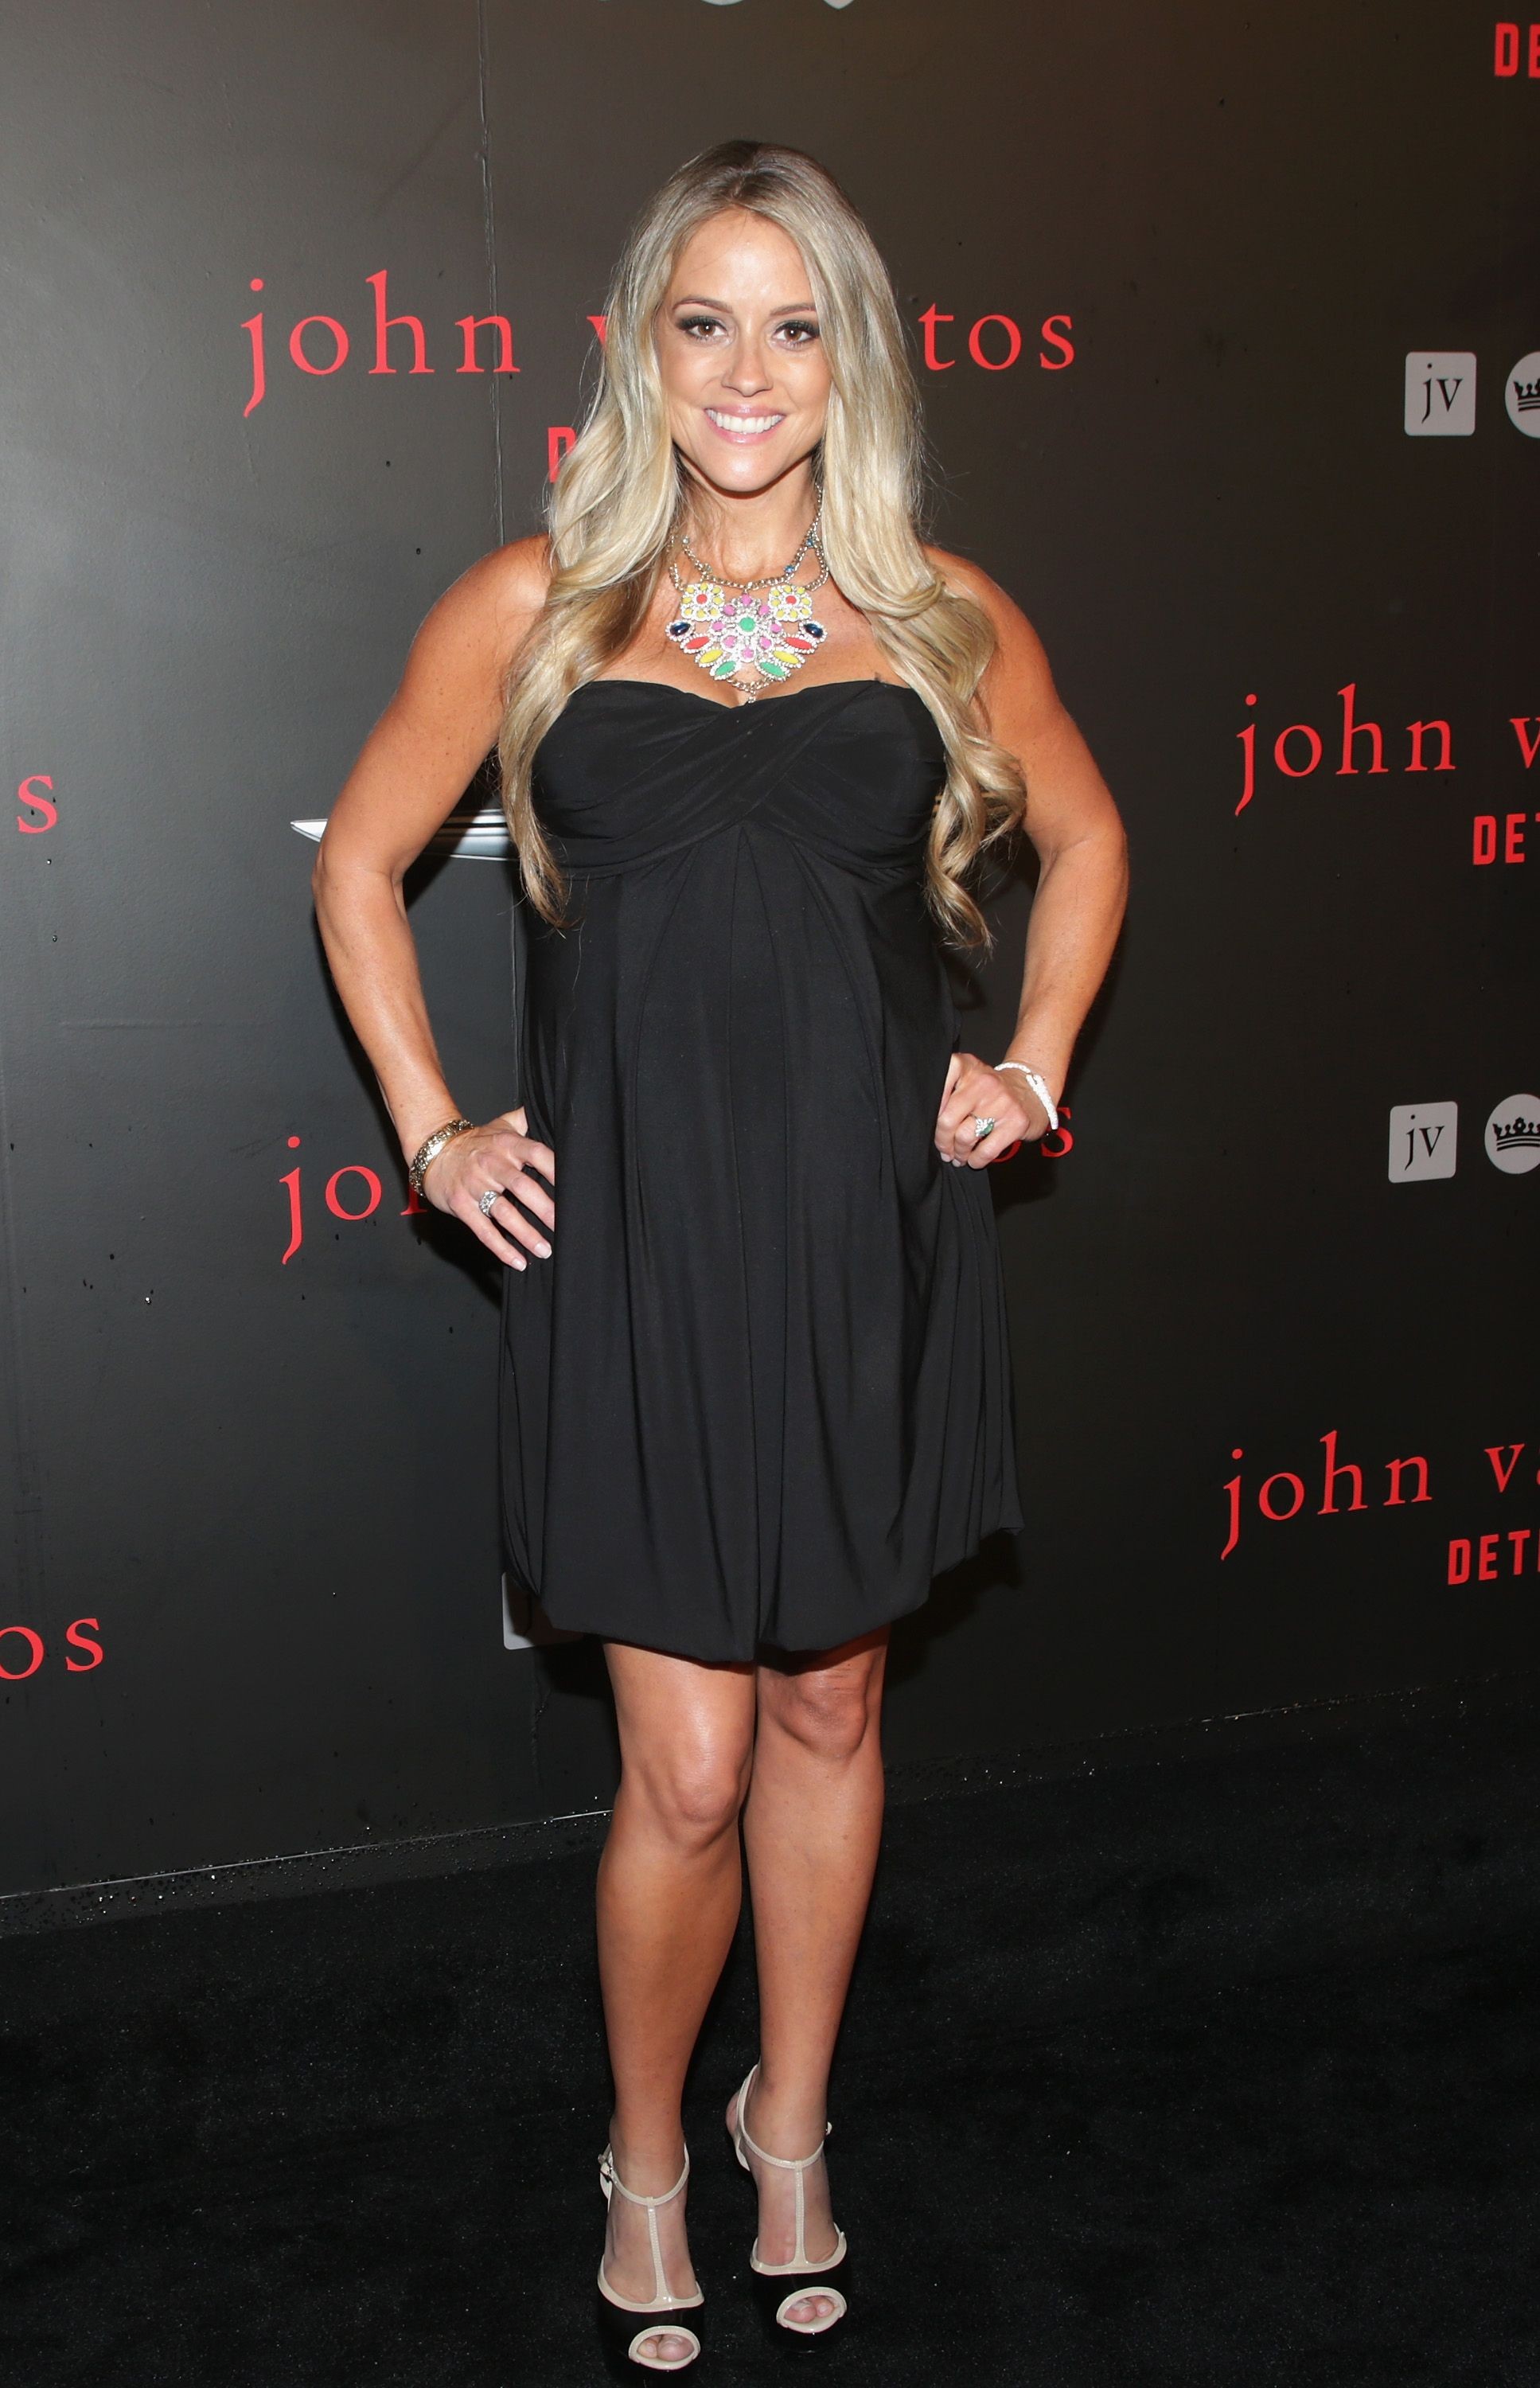 Nicole Curtis at John Varvatos Detroit Store Opening Party